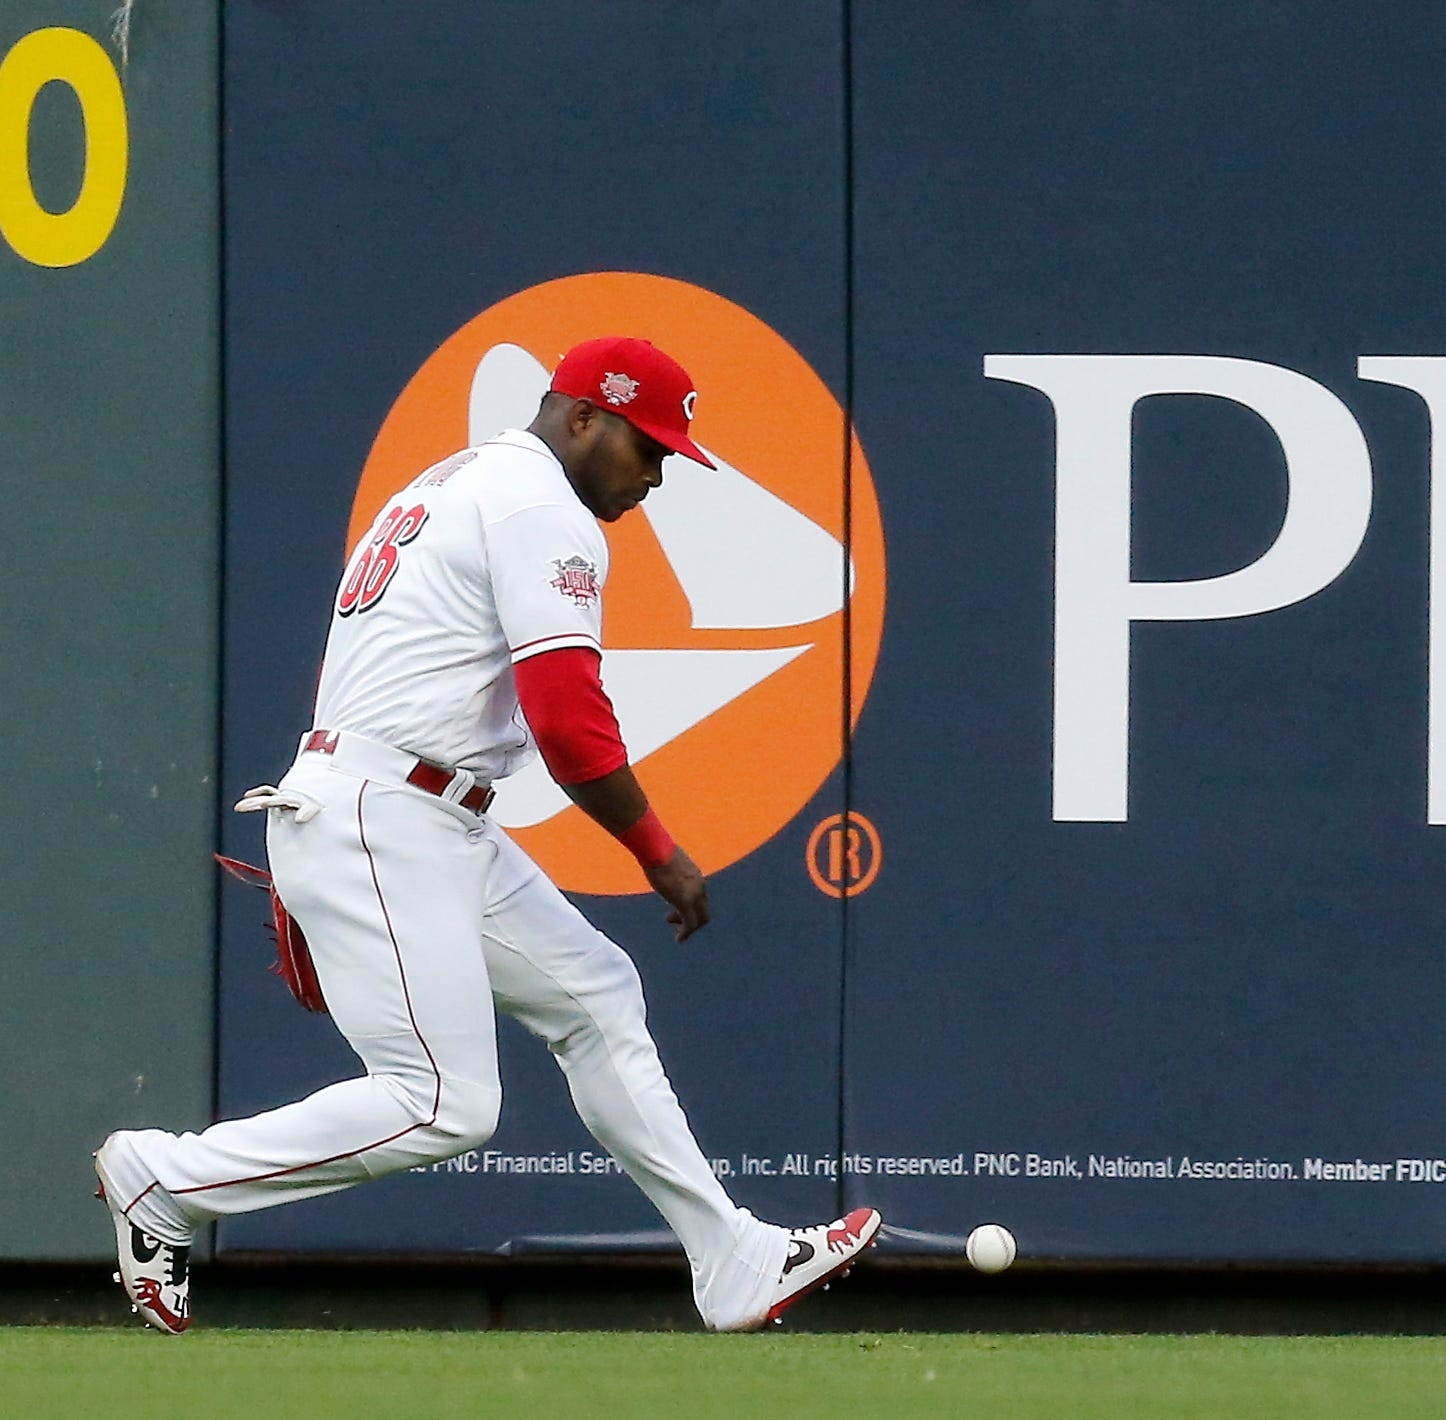 Yasiel Puig leaves Cincinnati Reds game with a possible left arm injury